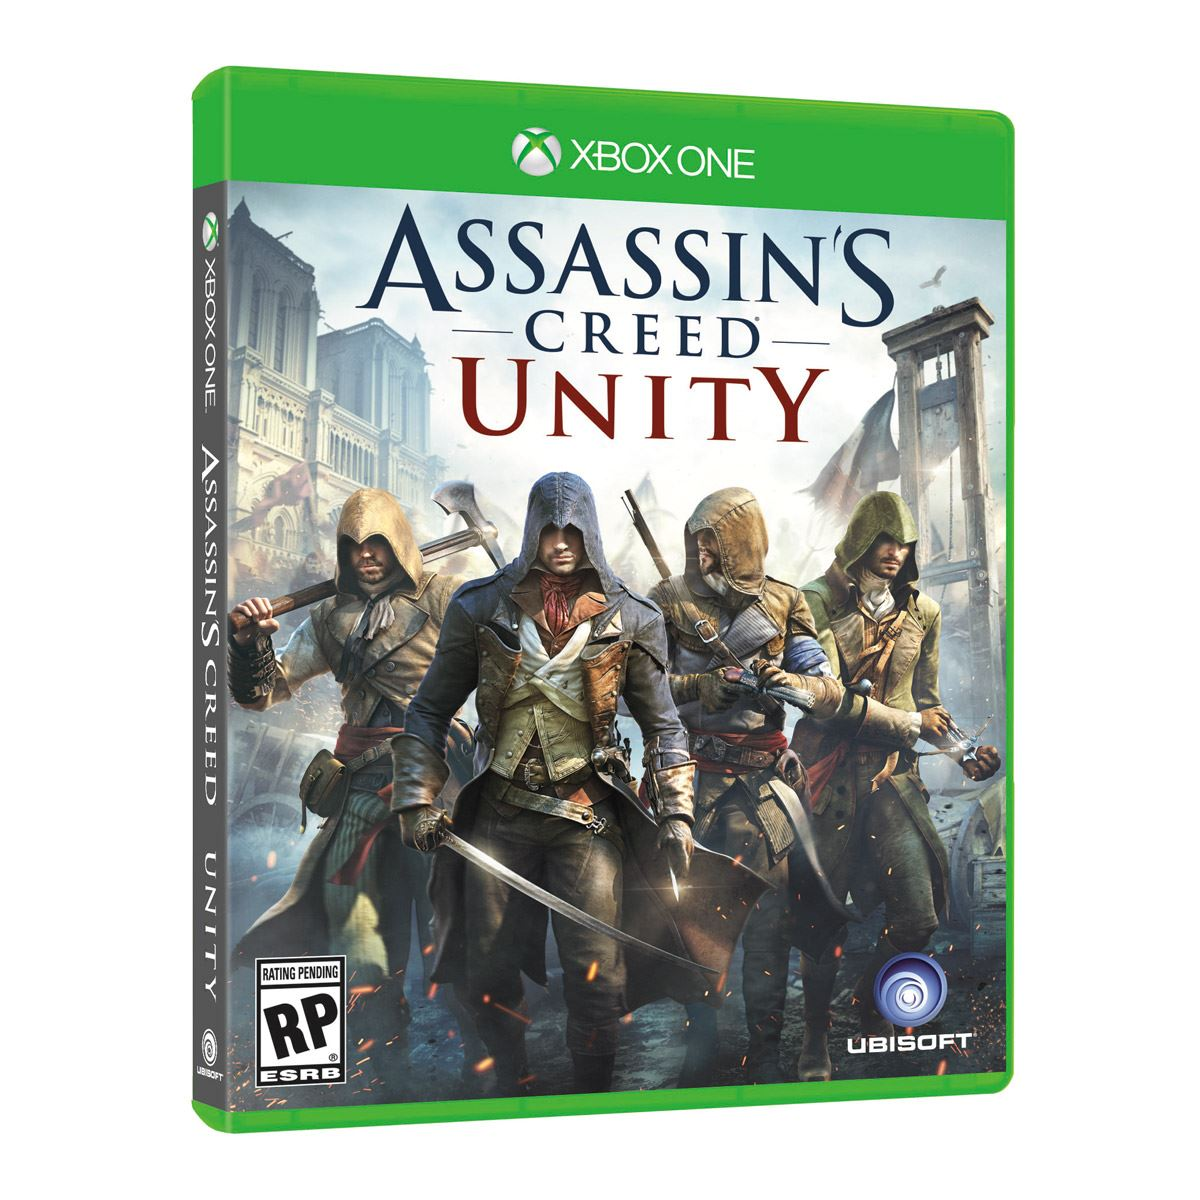 Xbox one assassins creed unity  - Sanborns